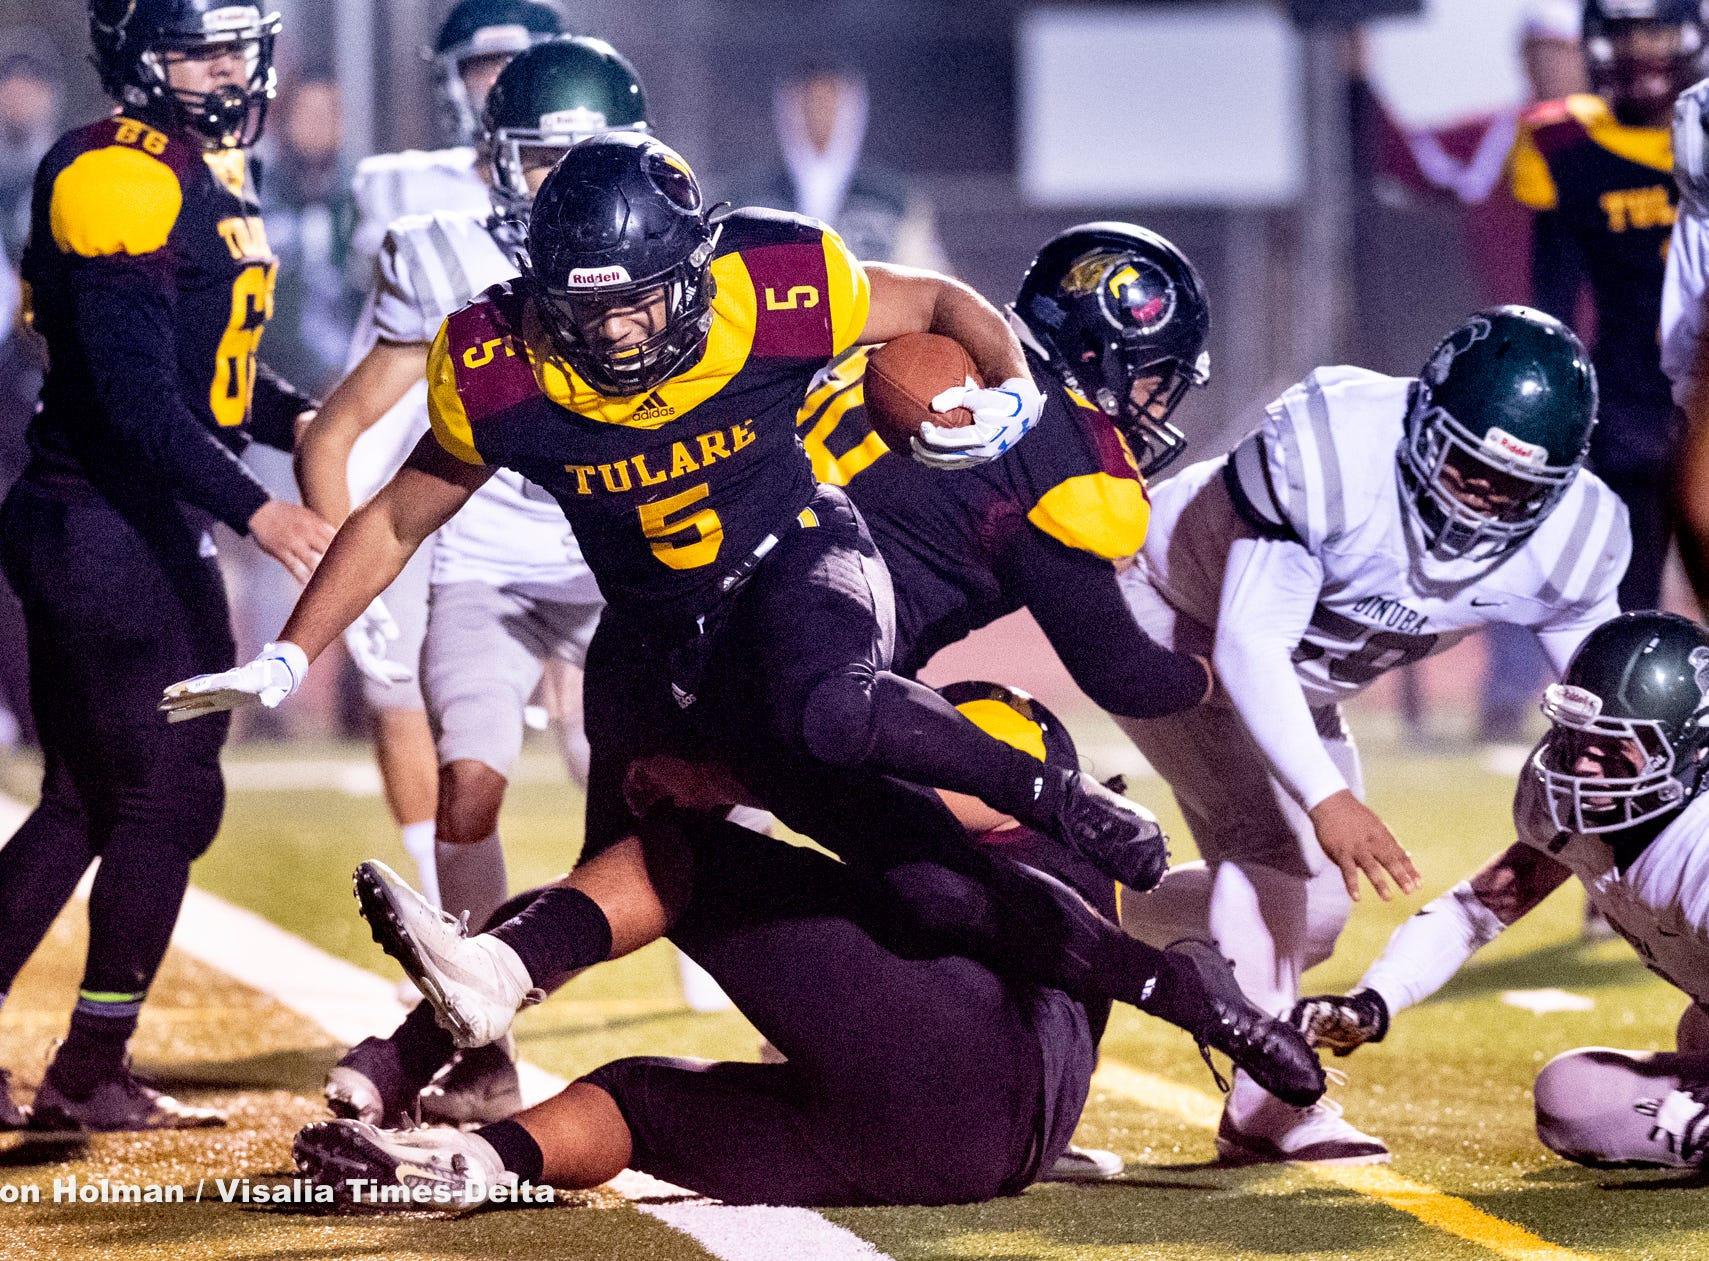 Tulare Union's David Bailey scores against Dinuba in a Central Section Division II semifinal high school football playoff on Friday, November 16, 2018.